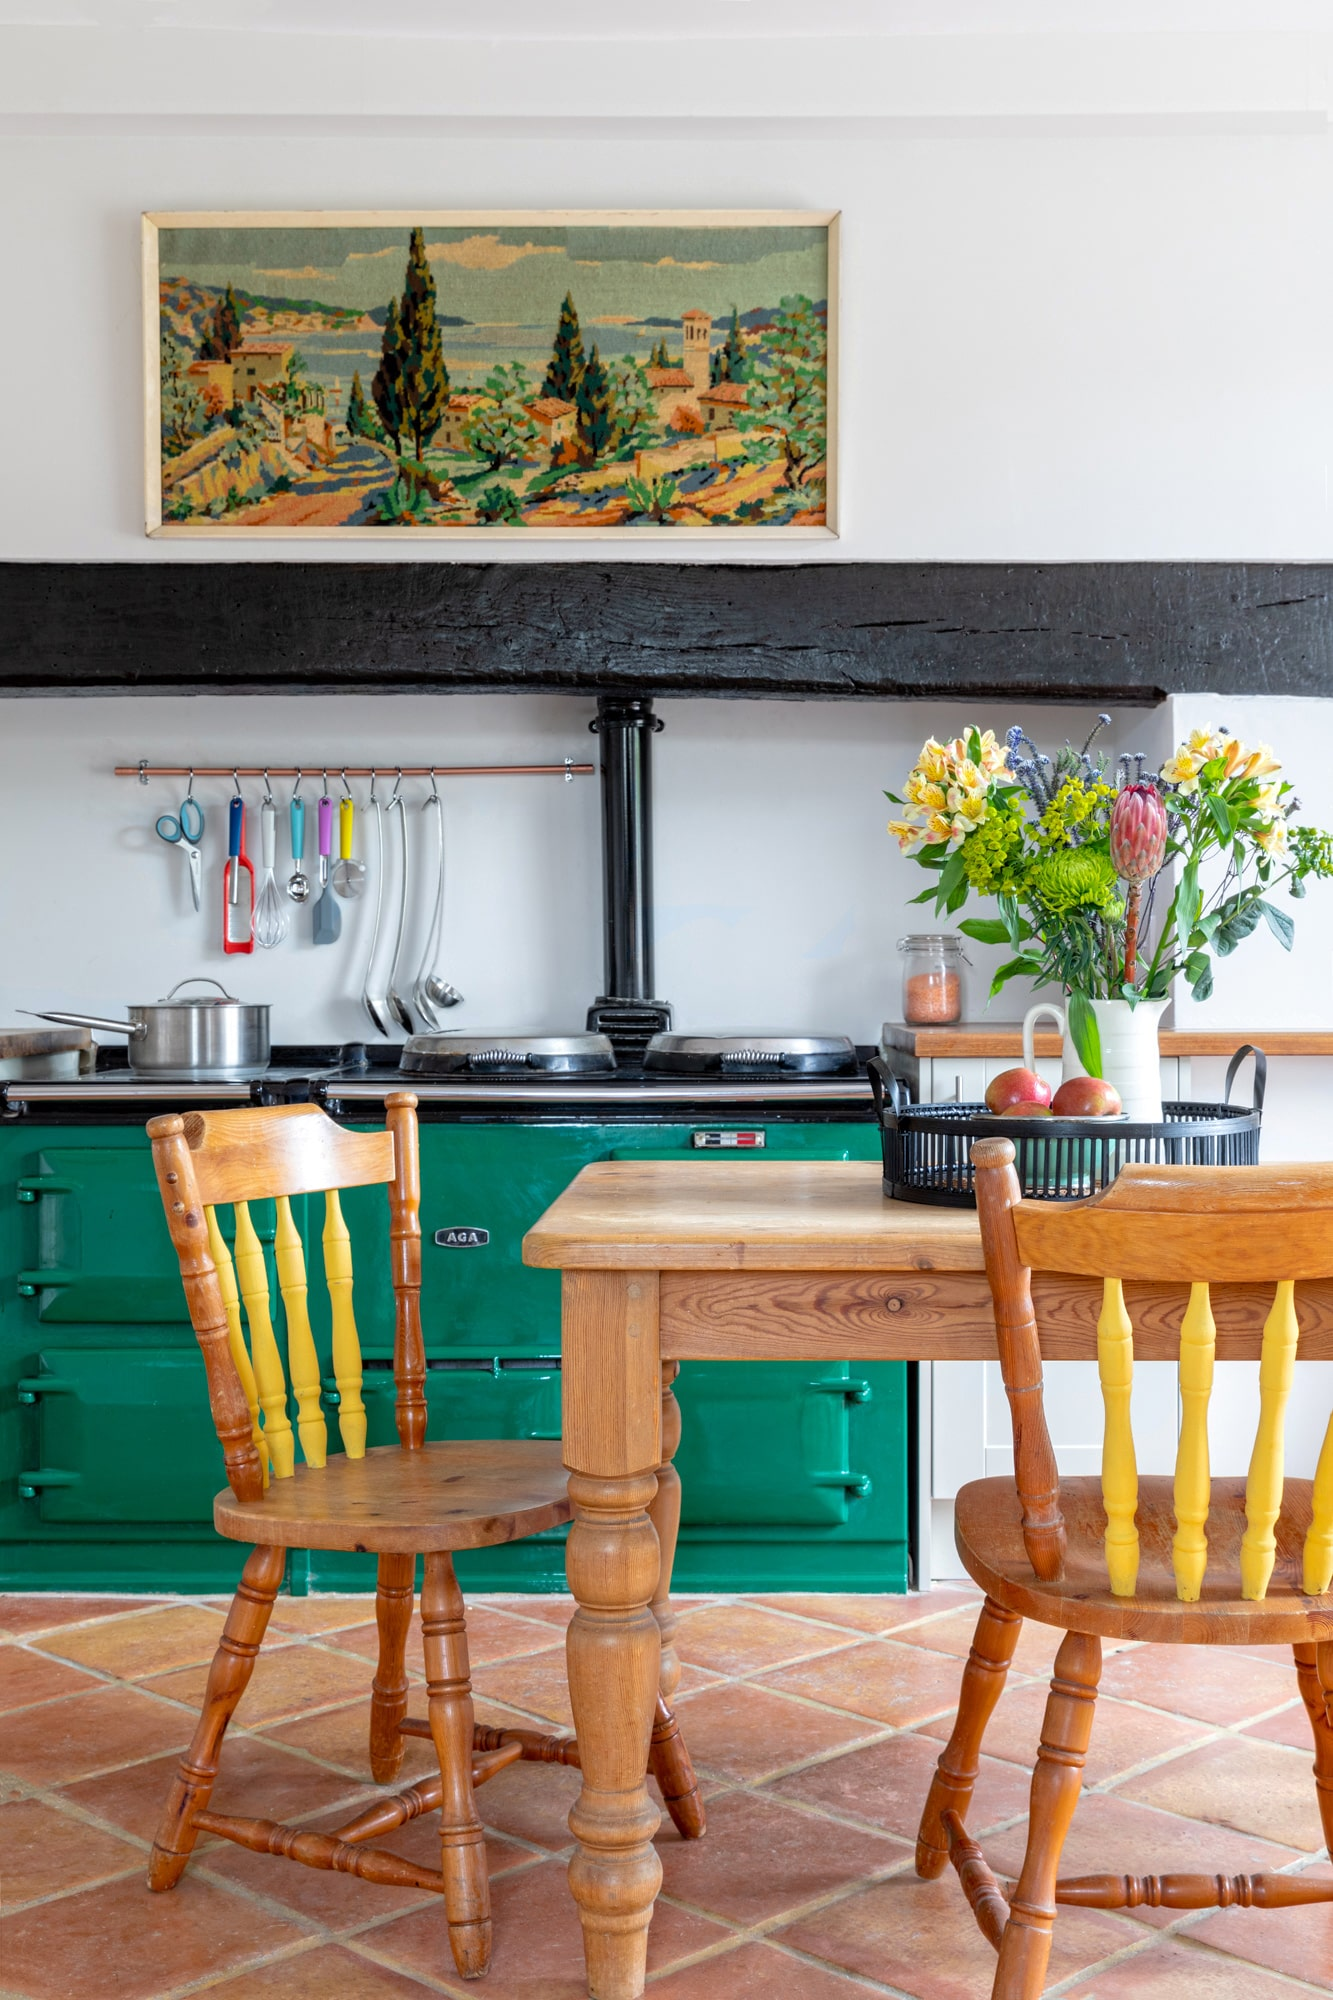 Interior photo of a kitchen in a farm house, a wooden table and chairs, aga hob